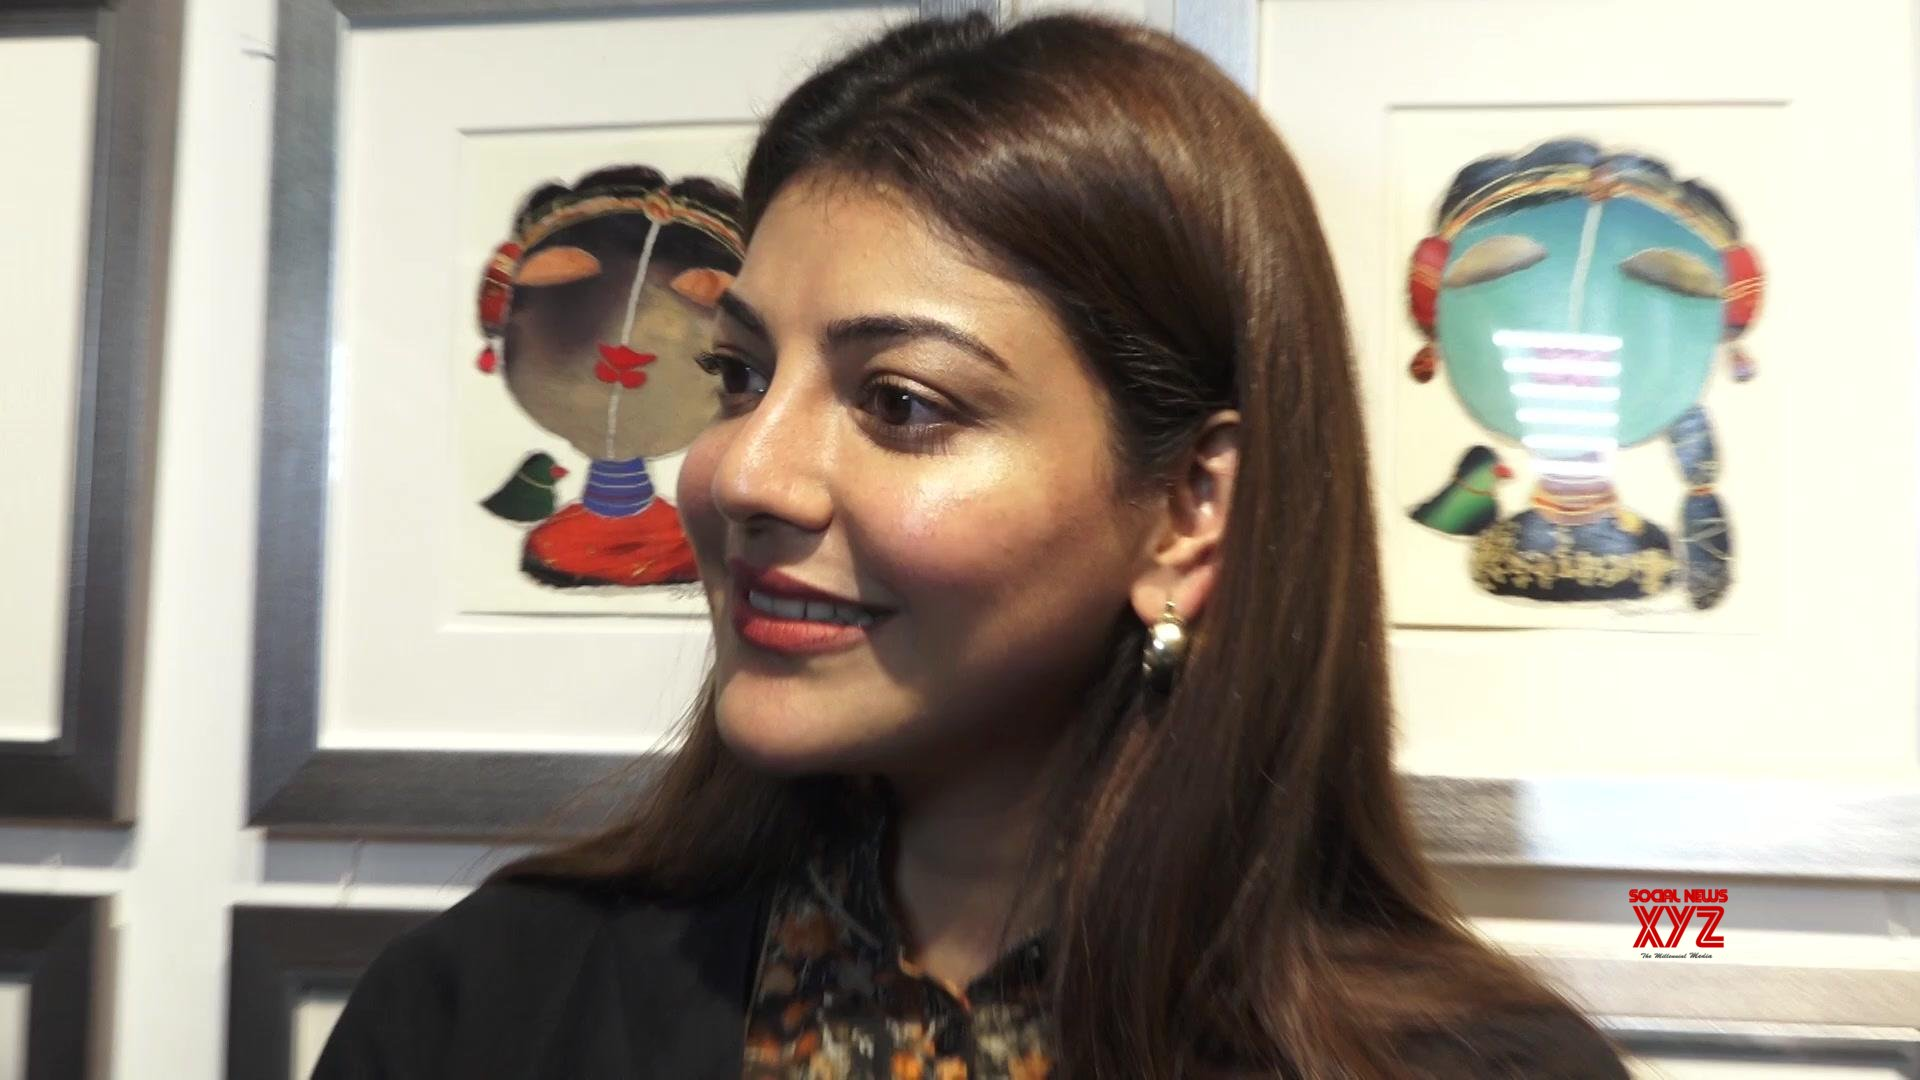 Kajal Aggarwal Stills From Studio 3 Art Gallery's Divine Intervention Soulful Narratives By World Renowned Artist G Subramanian And P Gnana